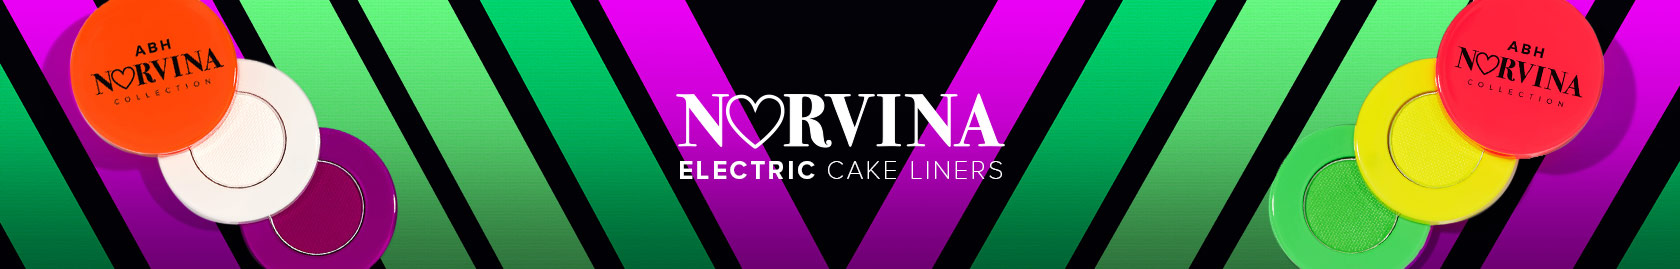 New! Norvina Electric Cake Liners